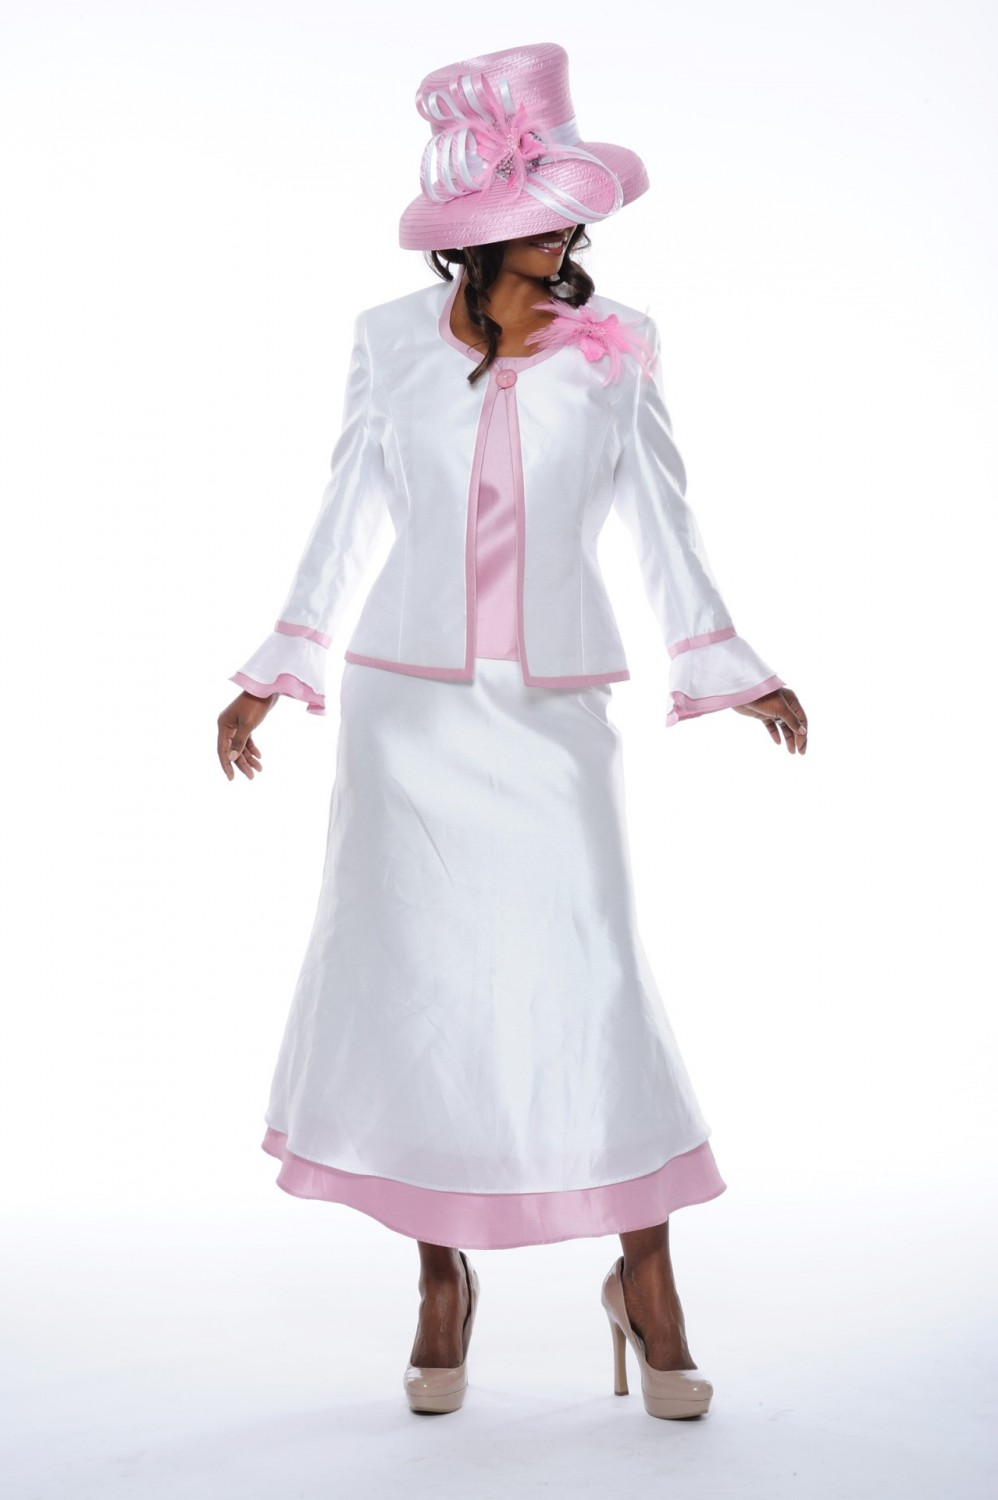 women church suits featured image style#n95033 gthxvzn